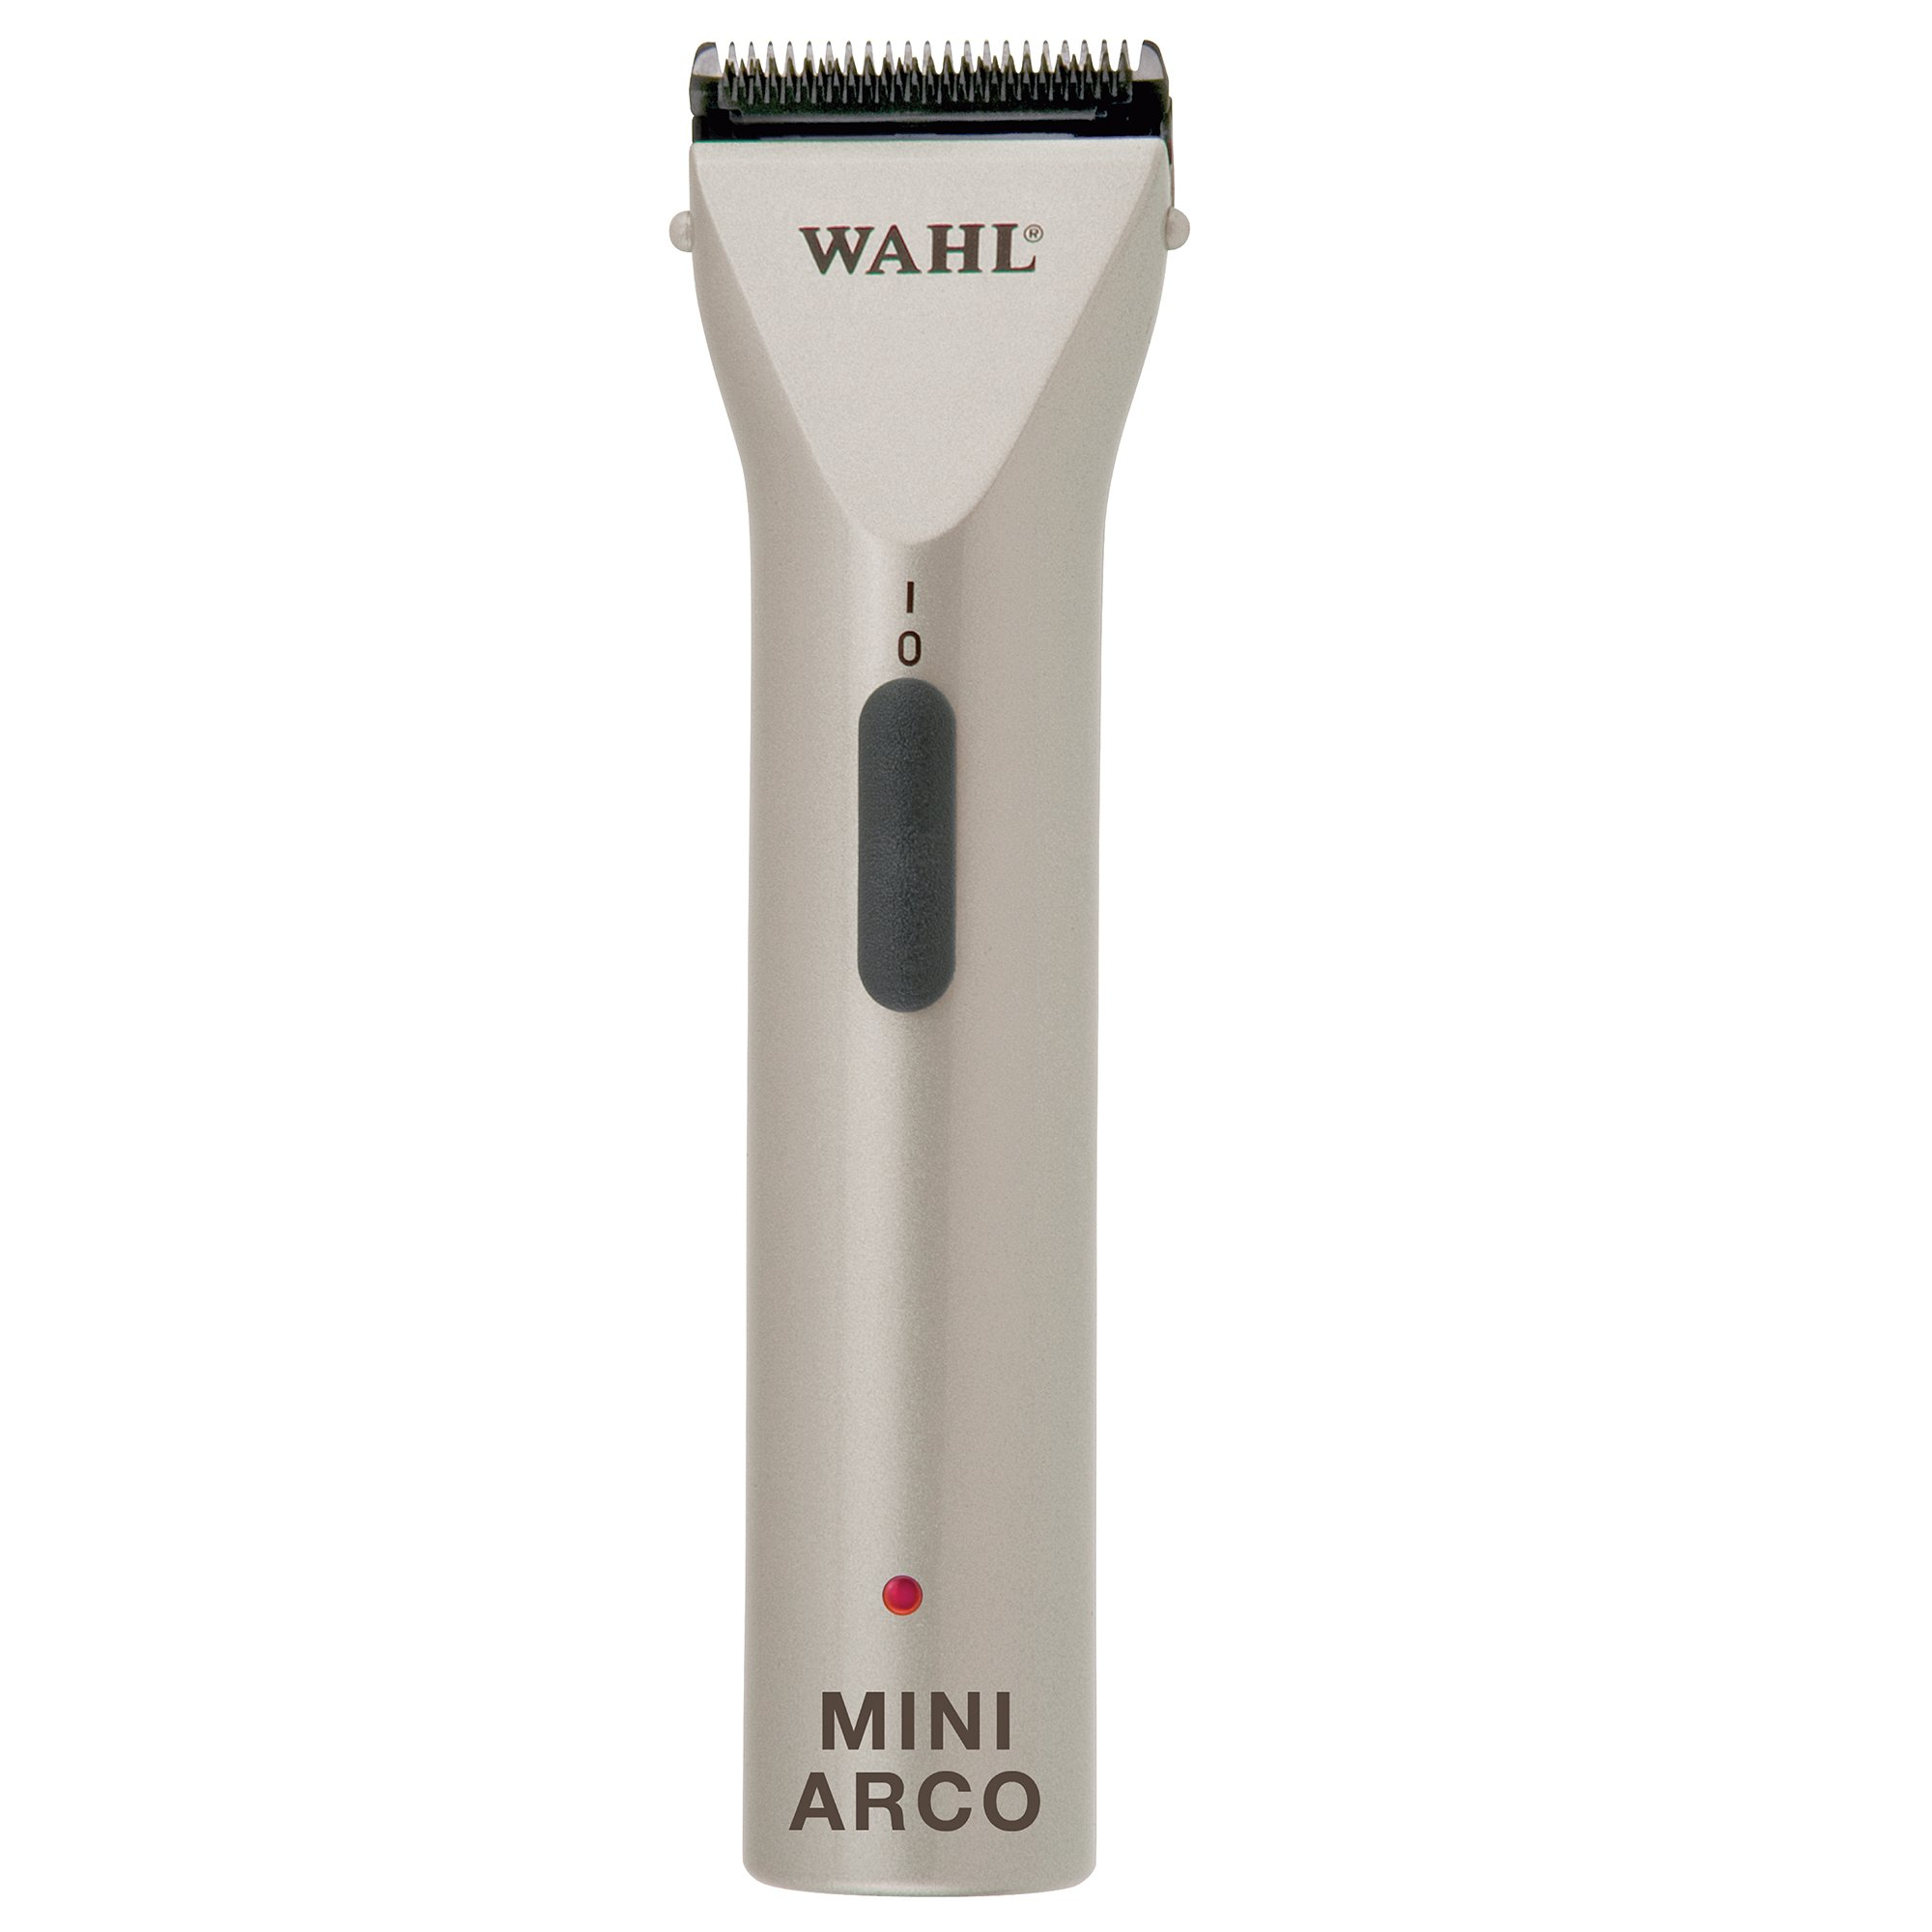 Wahl Professional Animal MiniArco Corded / Cordless Pet, Dog, Cat, and Horse Trimmer Kit (#8787-450A) by Wahl Professional Animal